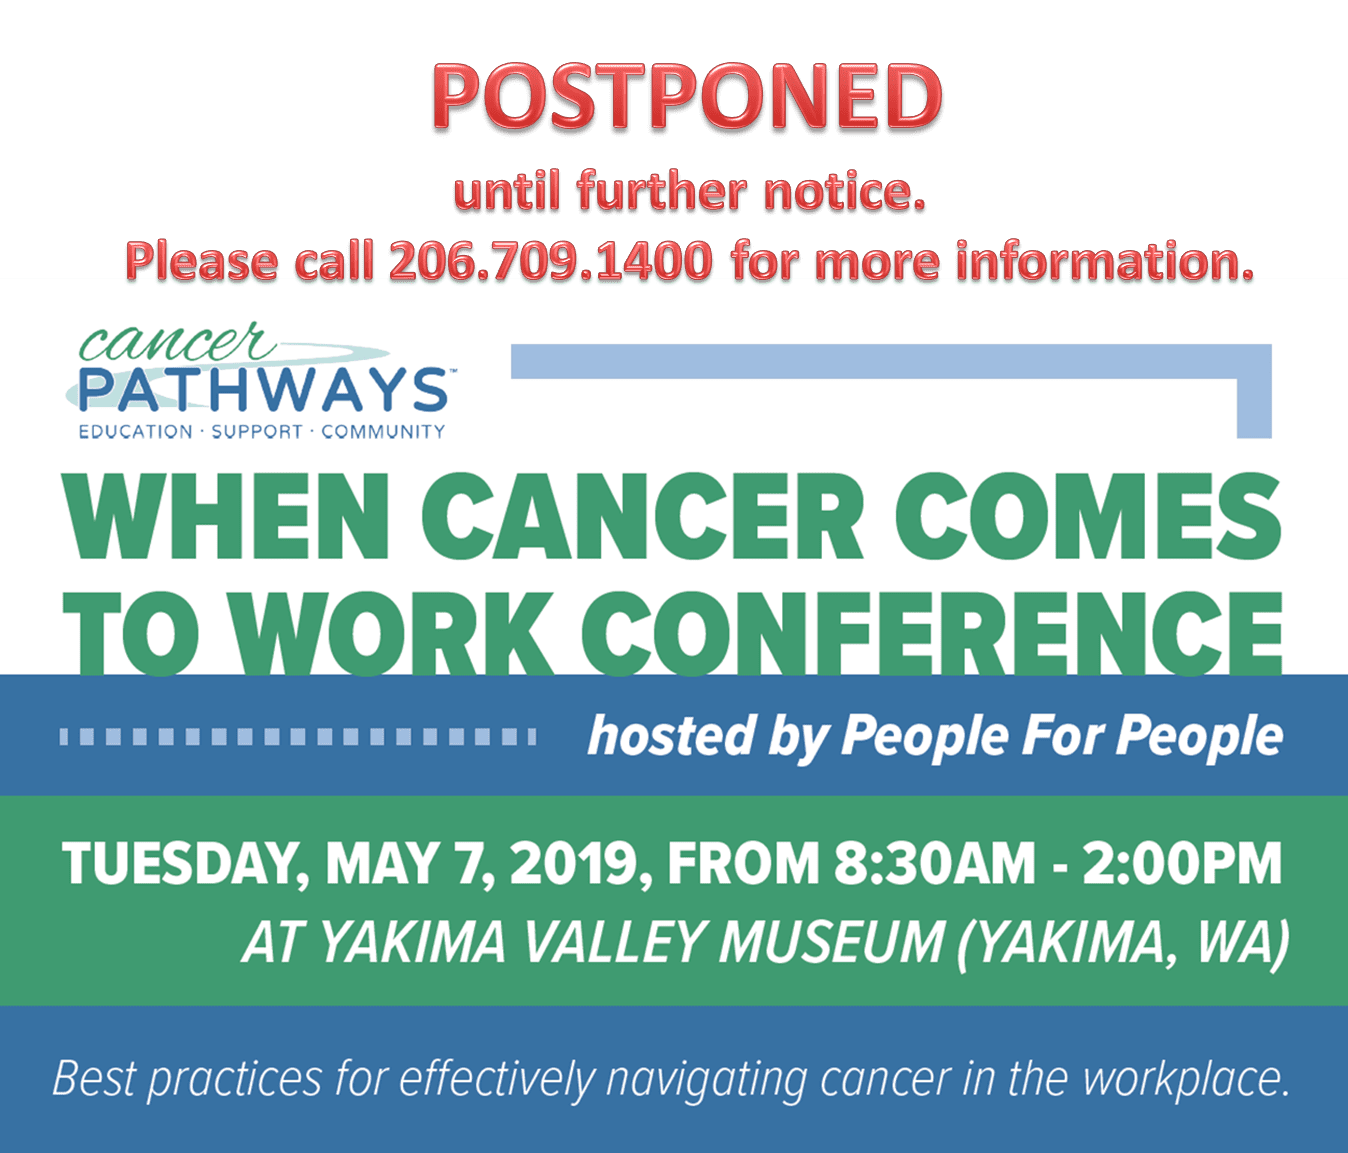 When Cancer Comes to Work Yakima Conference Postponed Until Further Notice.